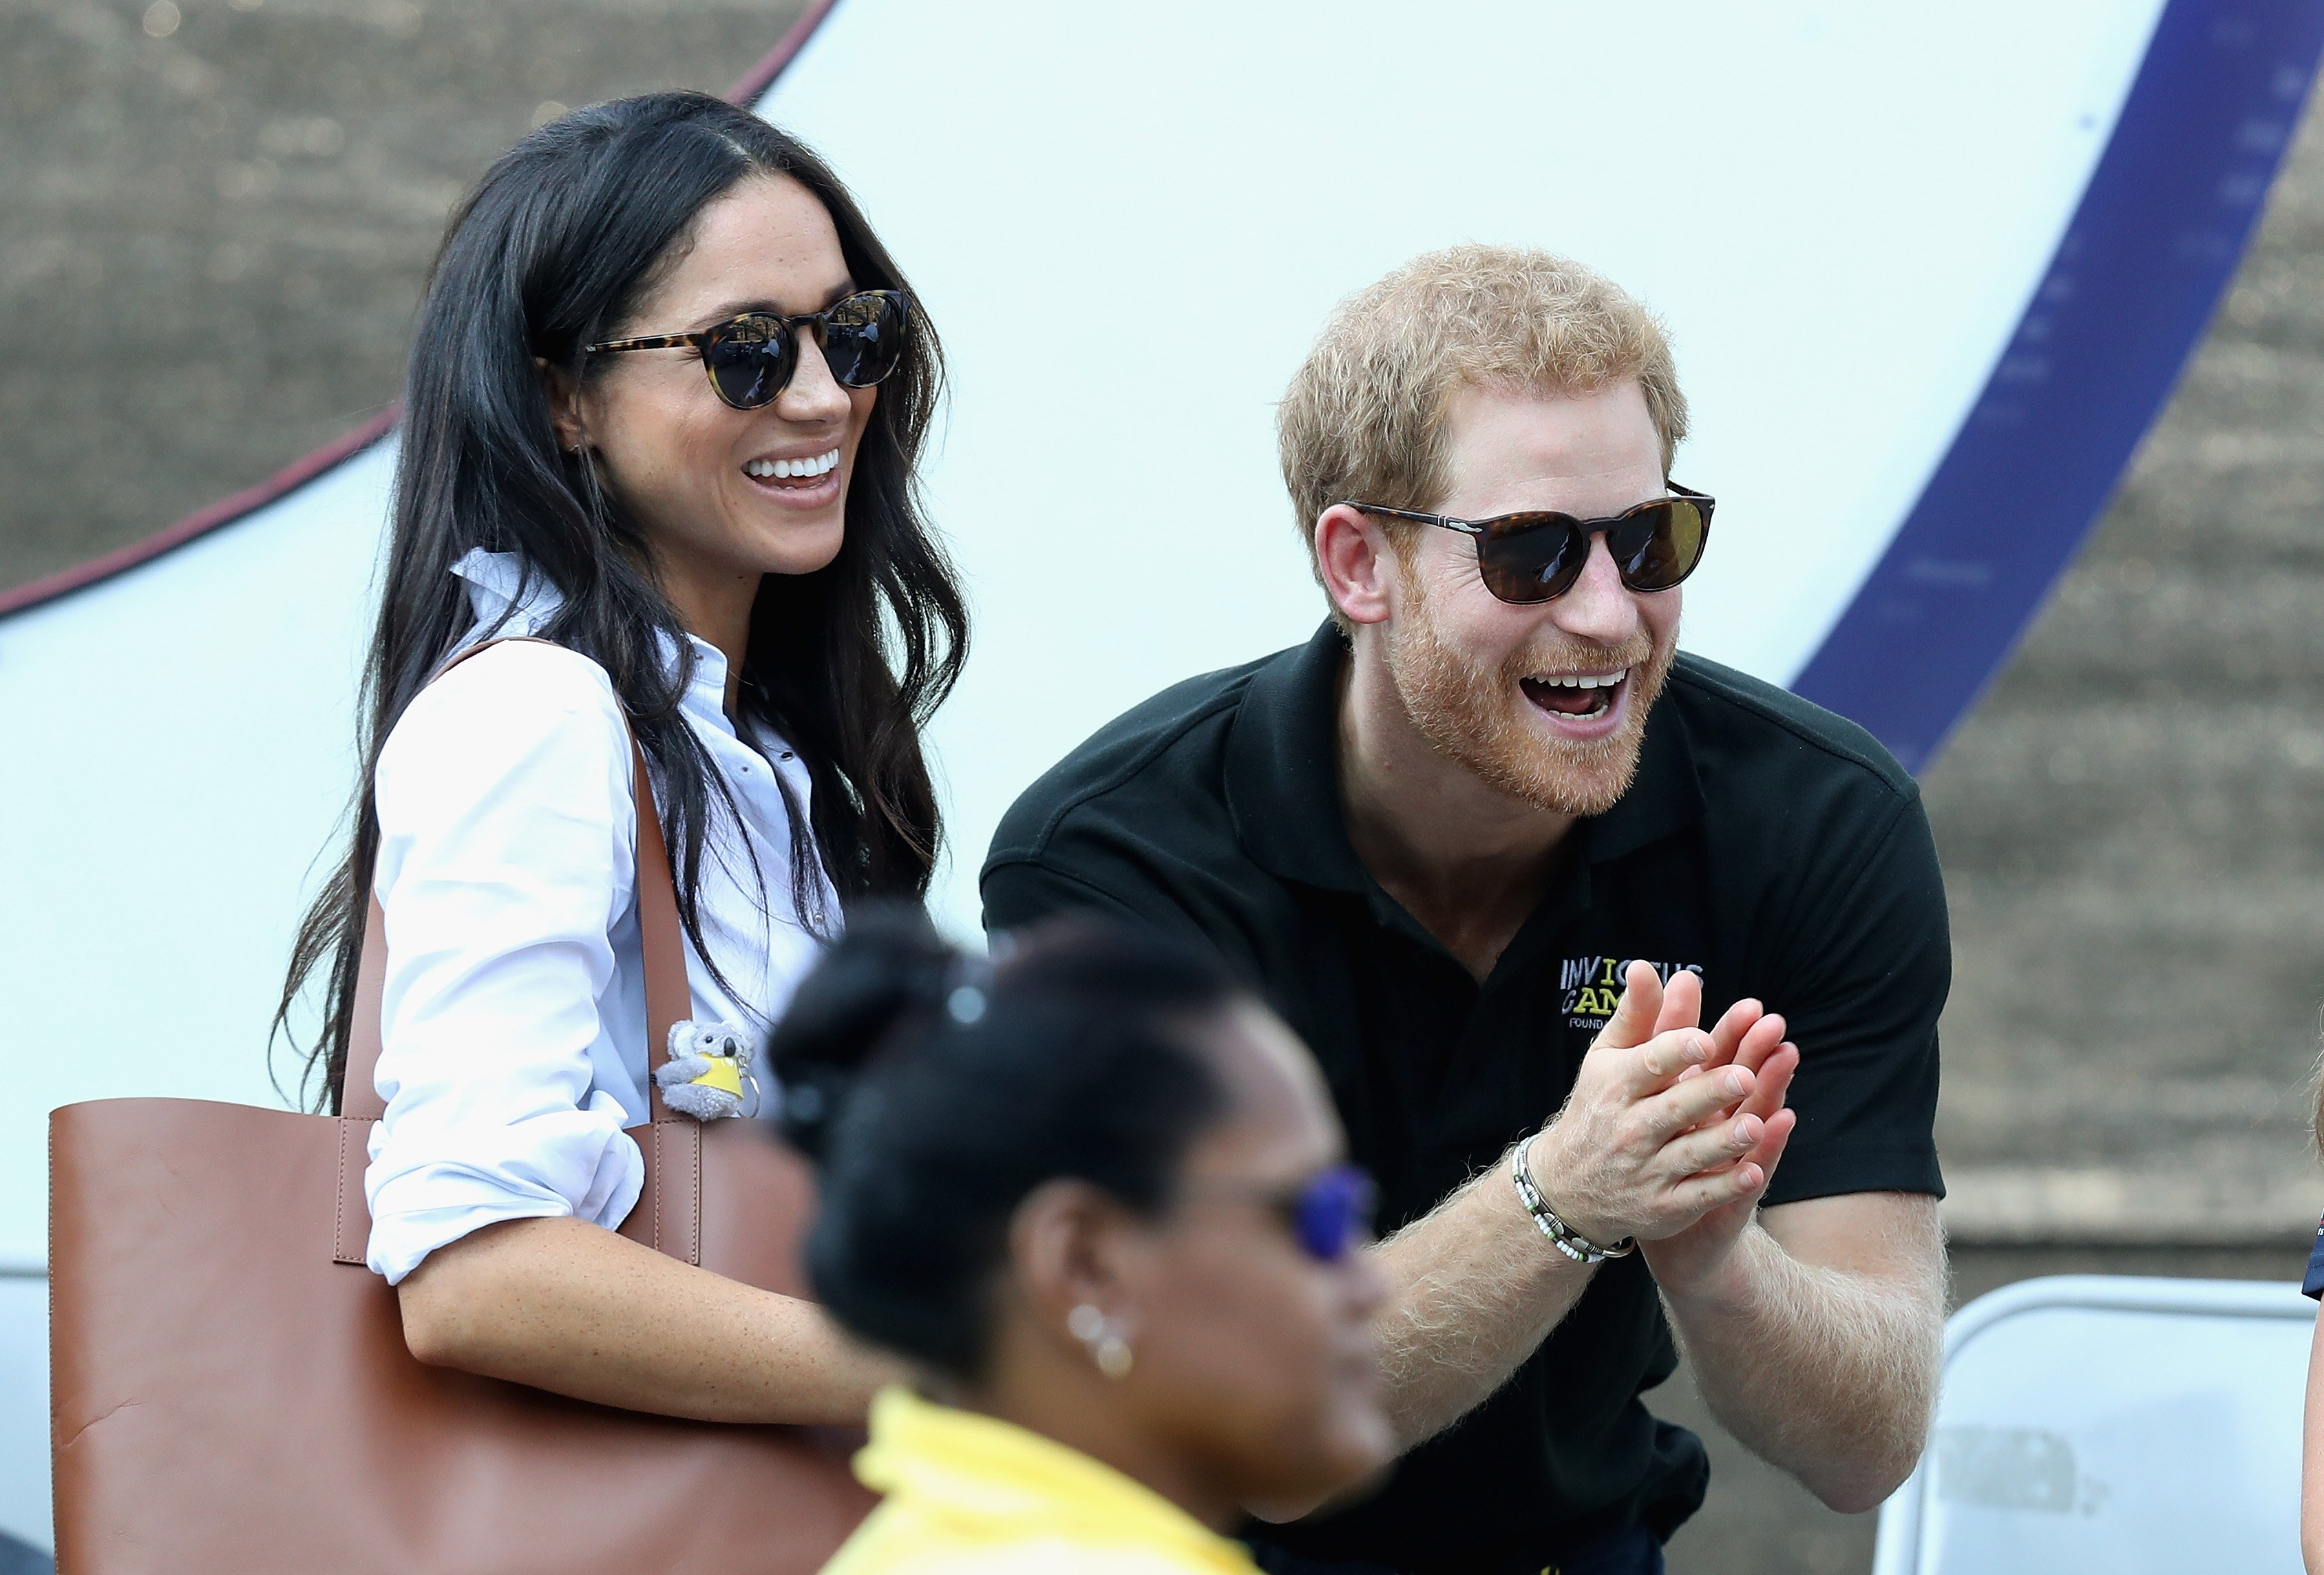 Image Credits: Getty Images / Chris Jackson   Prince Harry (R) and Meghan Markle (L) attend a Wheelchair Tennis match during the Invictus Games 2017 at Nathan Philips Square on September 25, 2017 in Toronto, Canada.